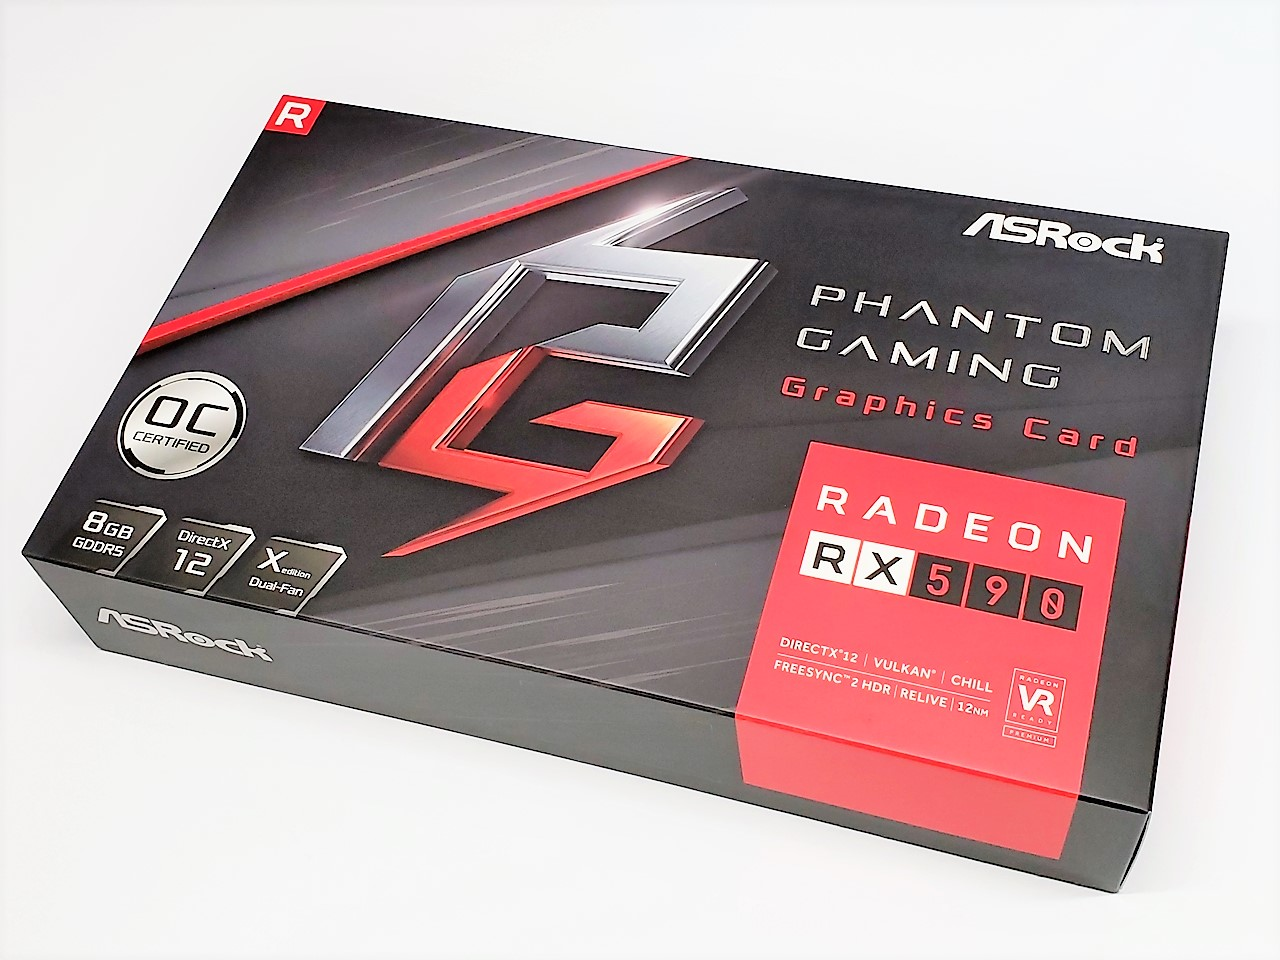 ASRock Radeon RX 590 8G OC Graphics Card (8GB GDDR5) Review